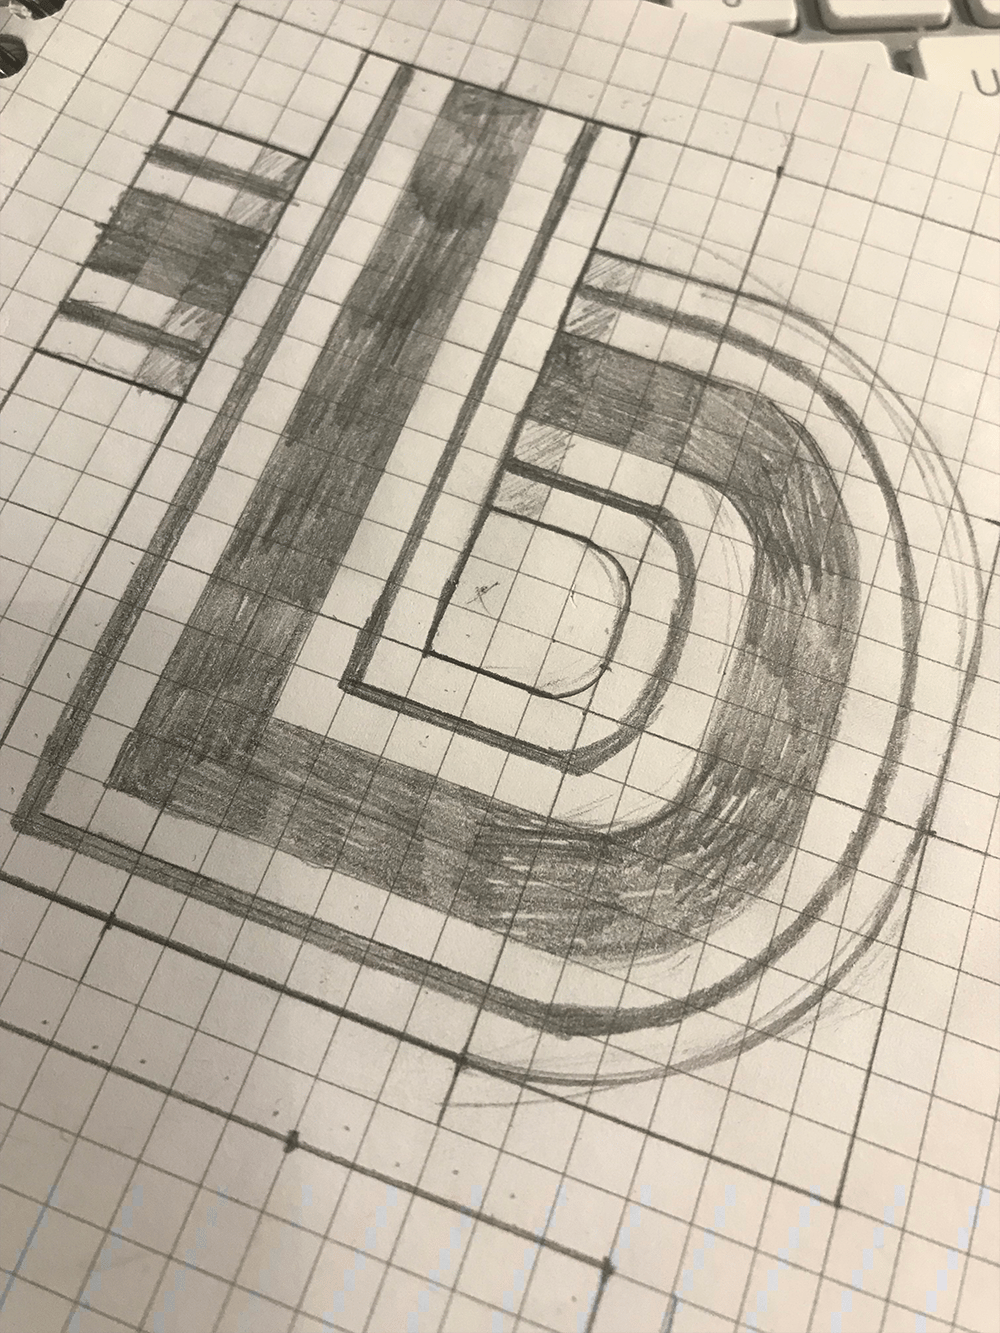 LD Combined Initials - image 3 - student project